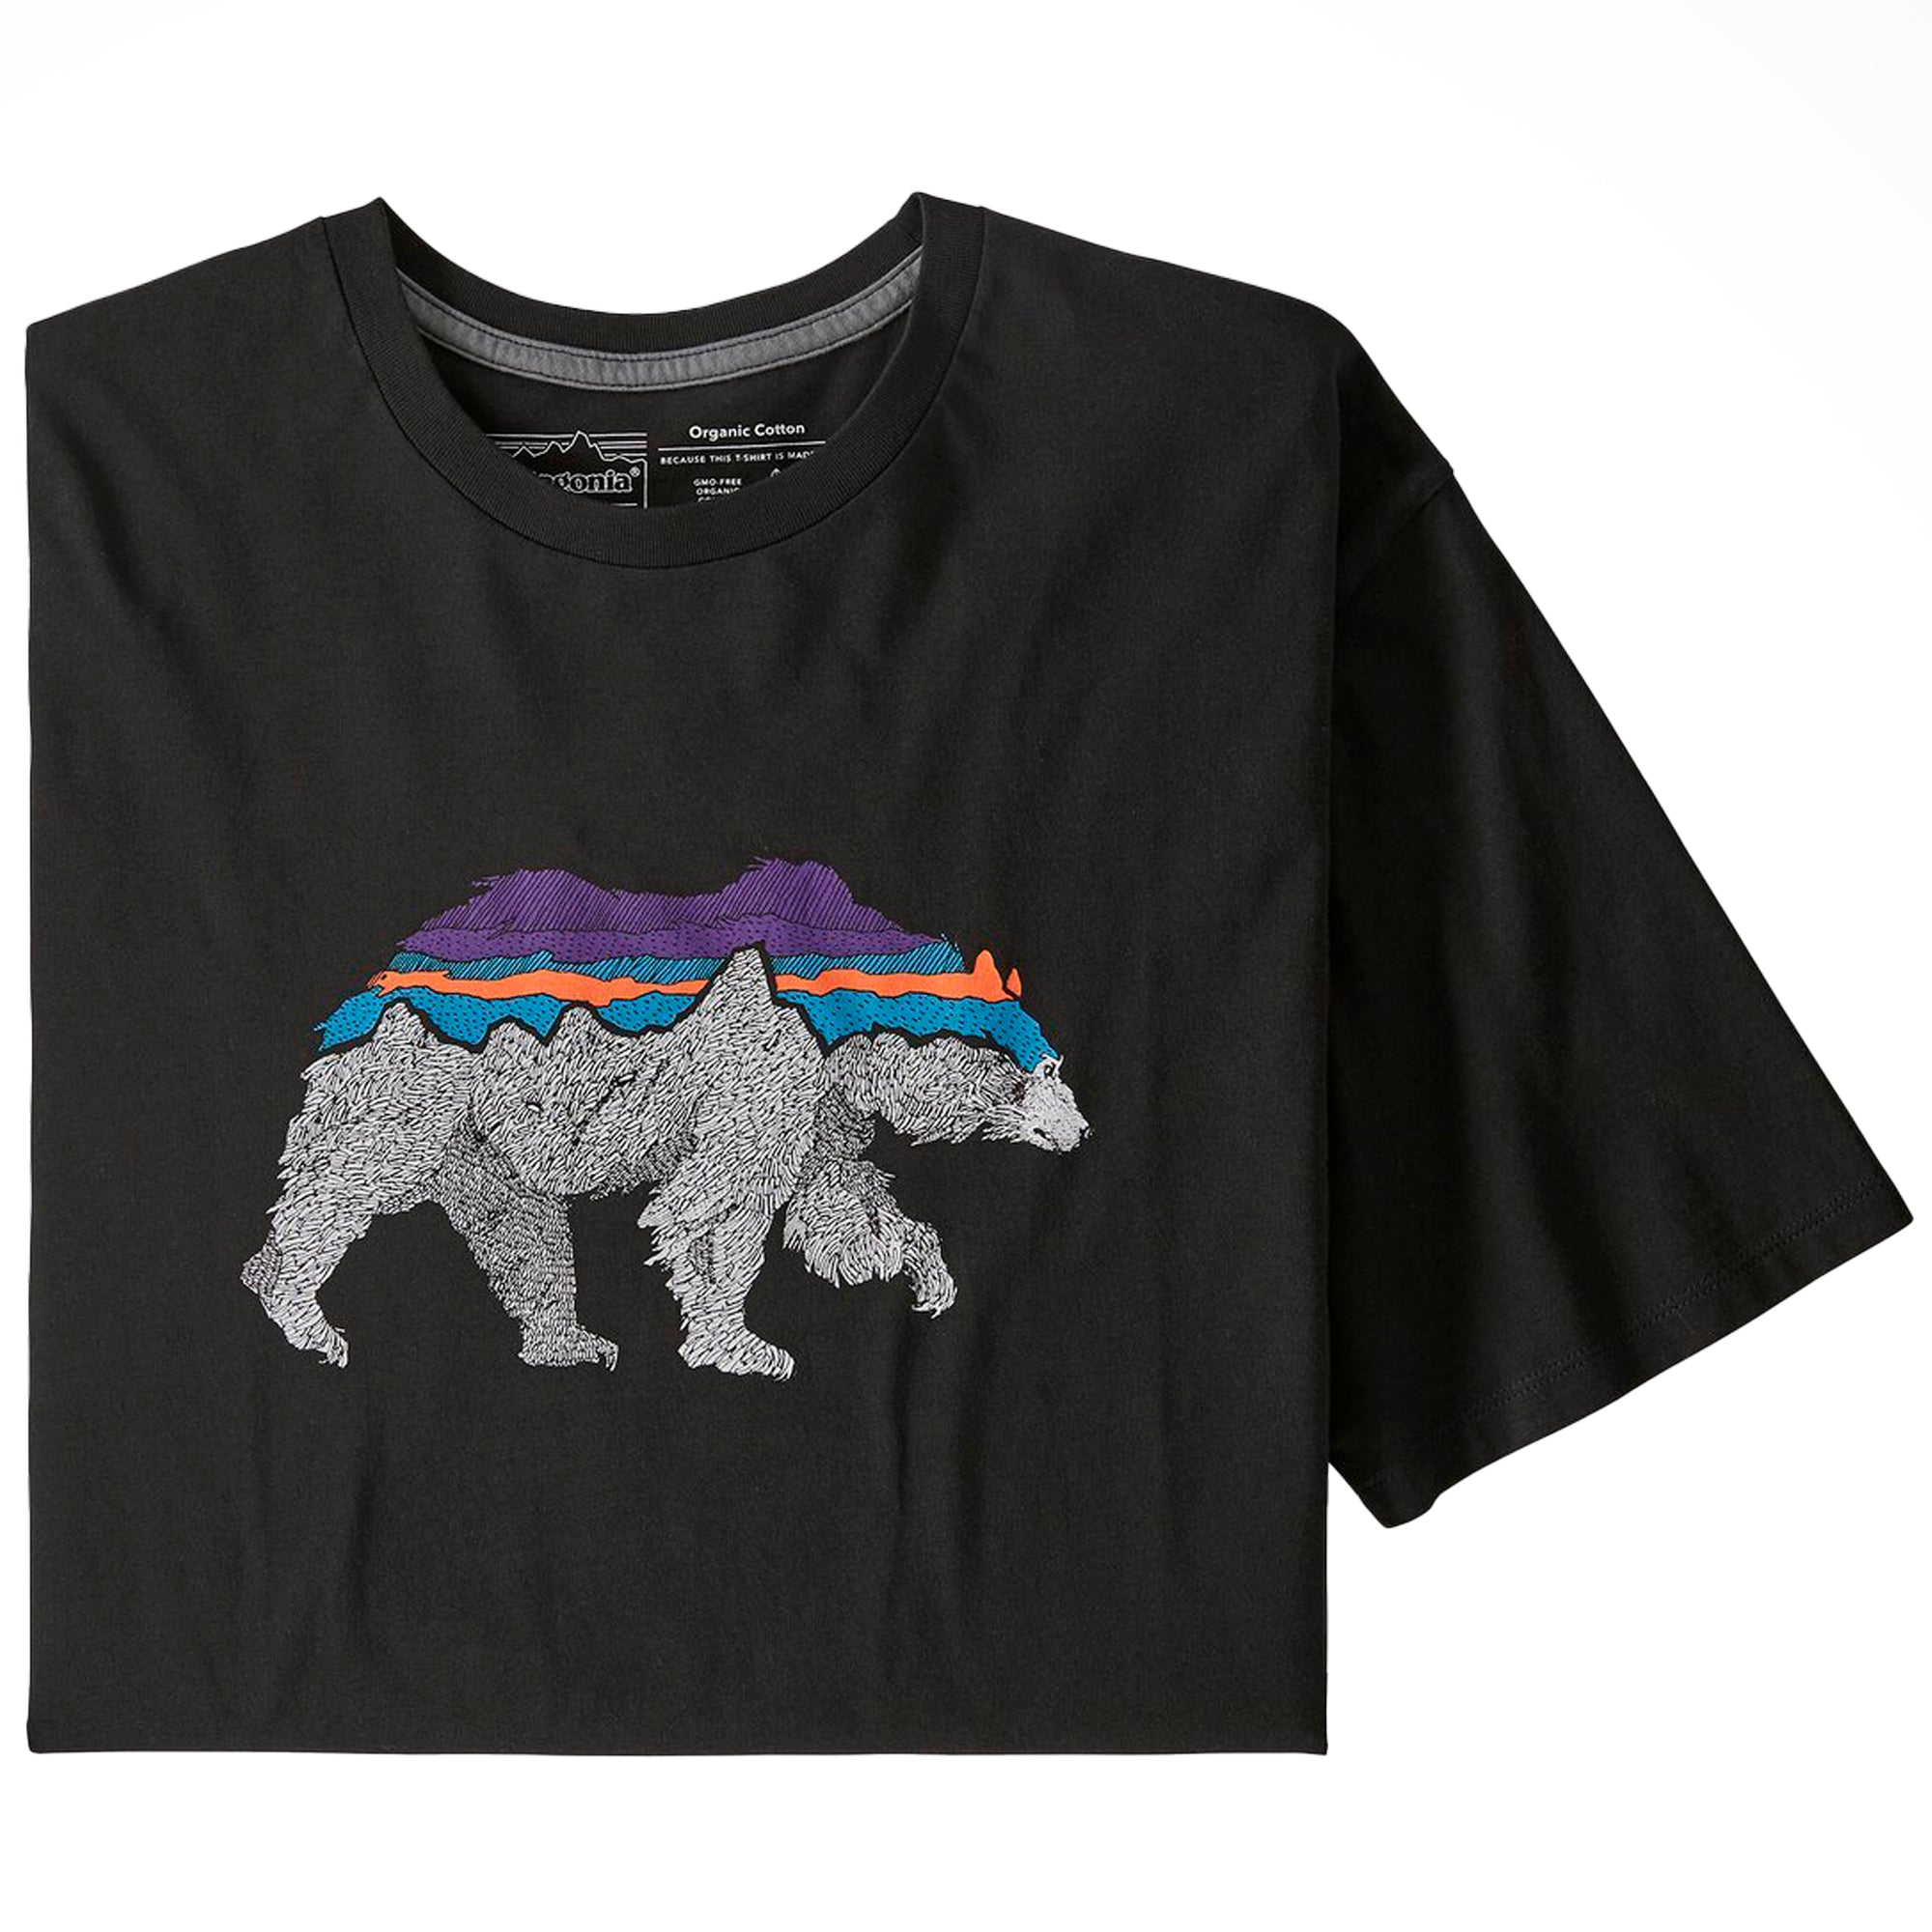 Patagonia Back For Good Organic T-Shirt: Black w/Bear - The Union Project